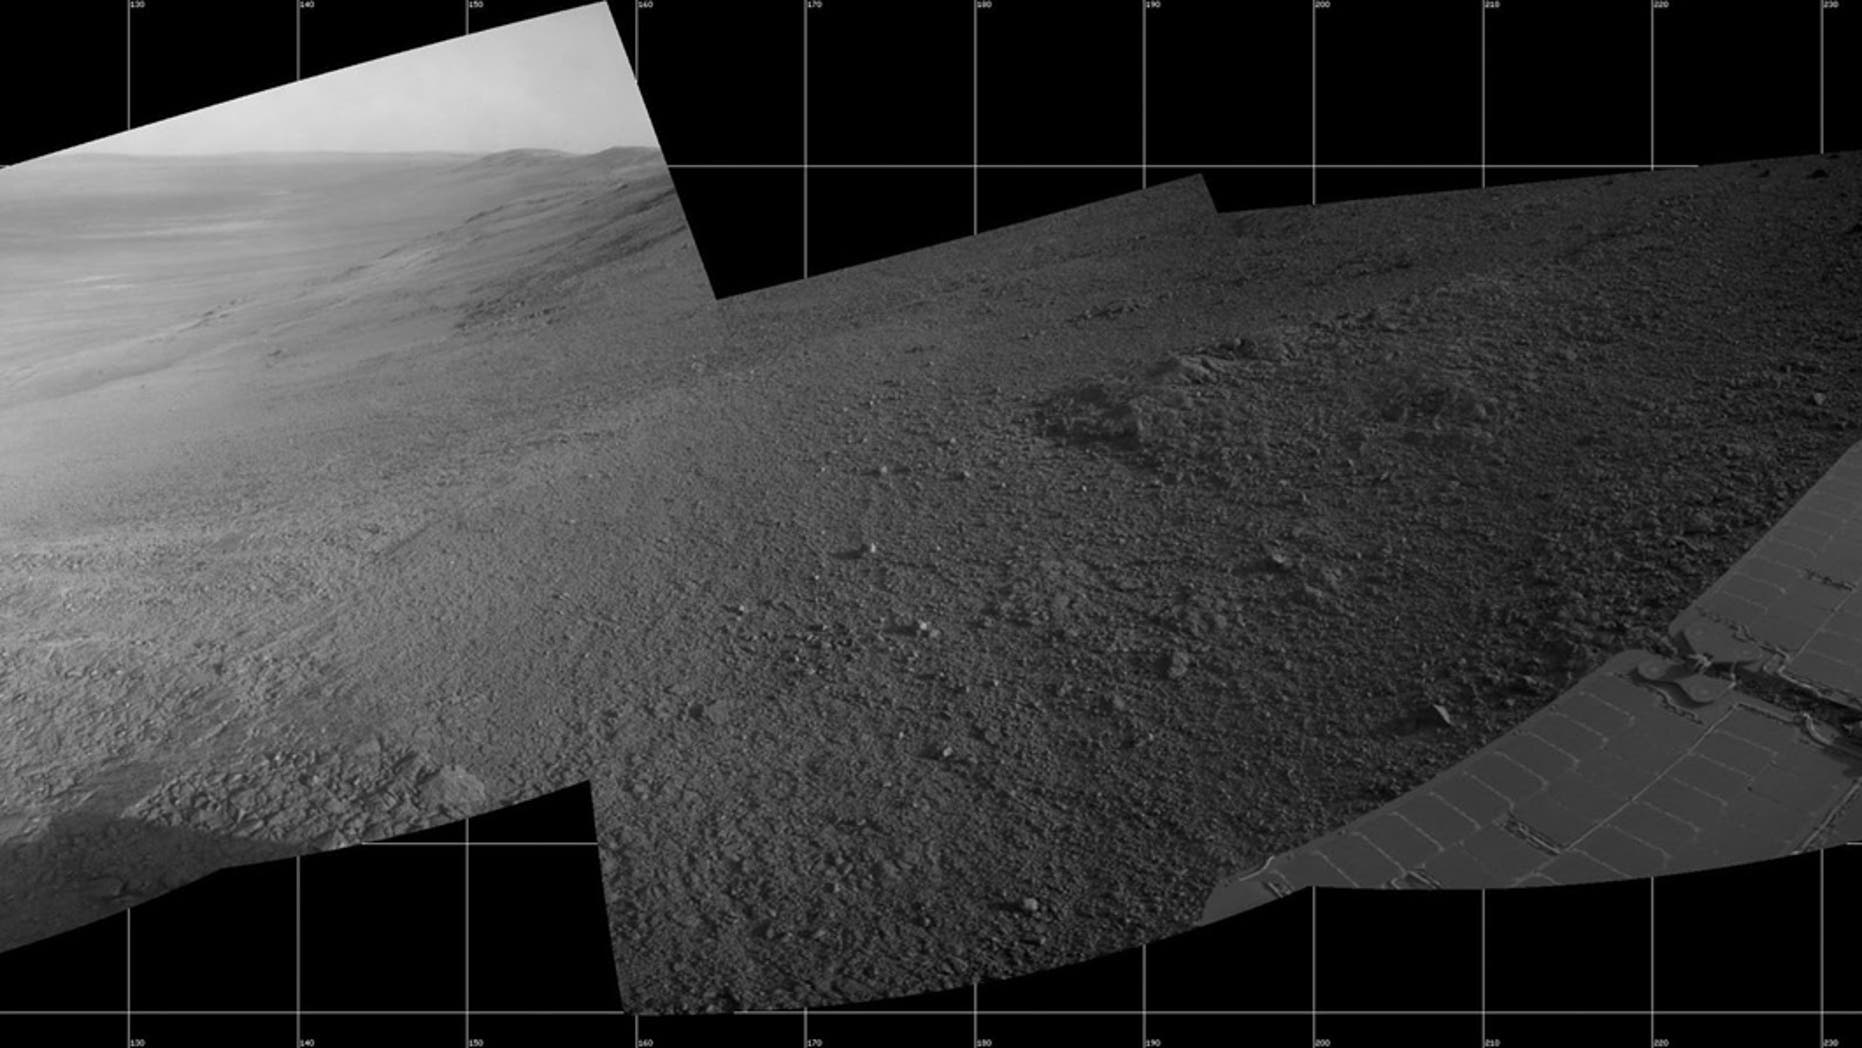 """About 11 months before the current dust storm enveloped the rover, Opportunity took five images that were turned into a mosaic showing a view from inside the upper end of """"Perseverance Valley"""" on the inner slope of Endeavour Crater's western rim. The images were taken on July 7, 2017. (Credit: NASA/JPL-Caltech)"""